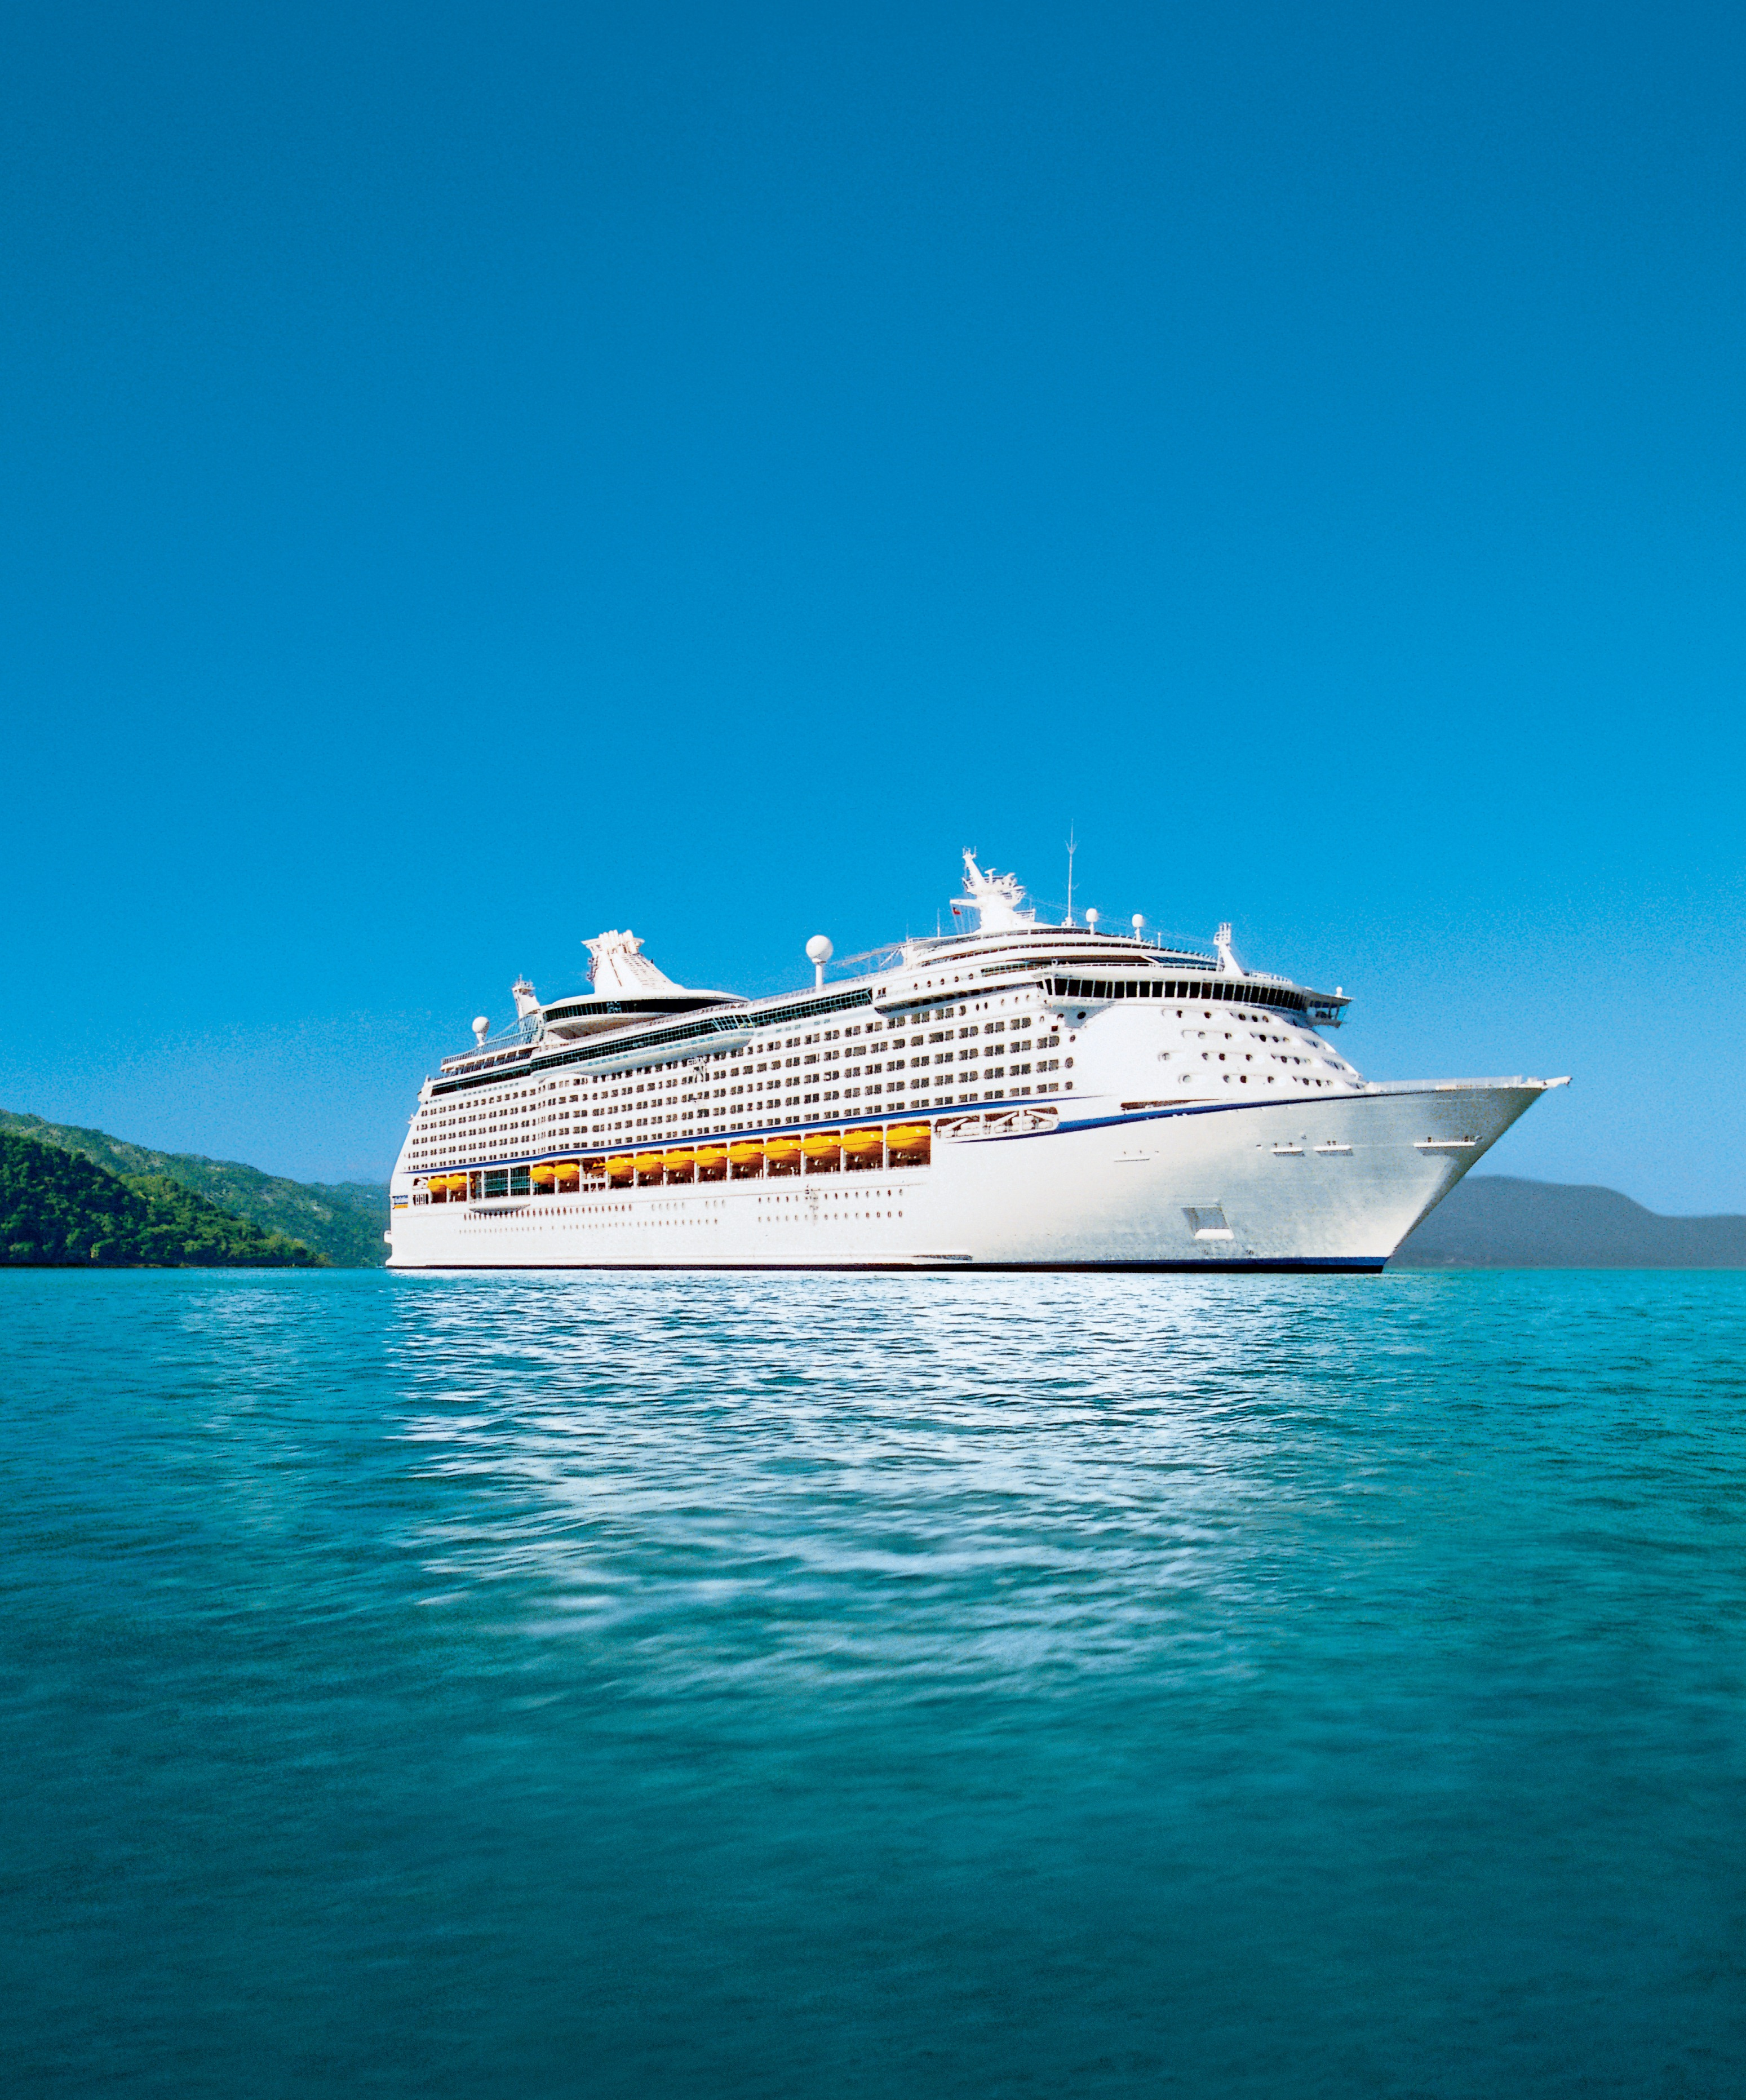 P Amp O Cruise Workers Paid 75p An Hour Aol Travel Uk